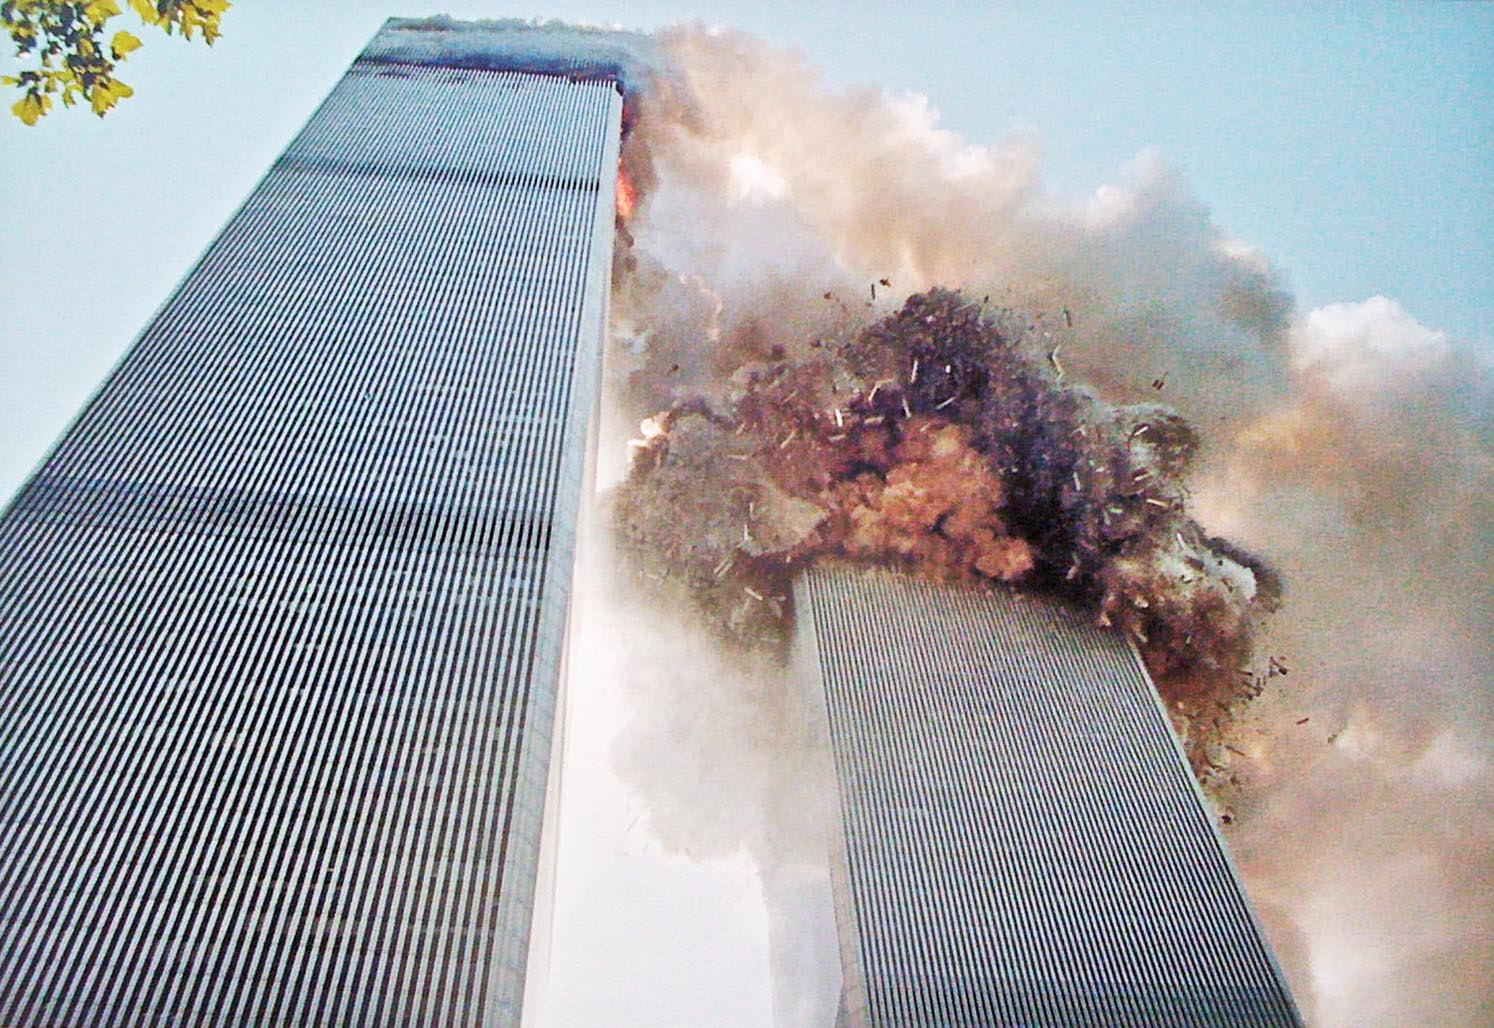 16 Most Powerful Photos of the 9/11 Attacks   True Crime ...